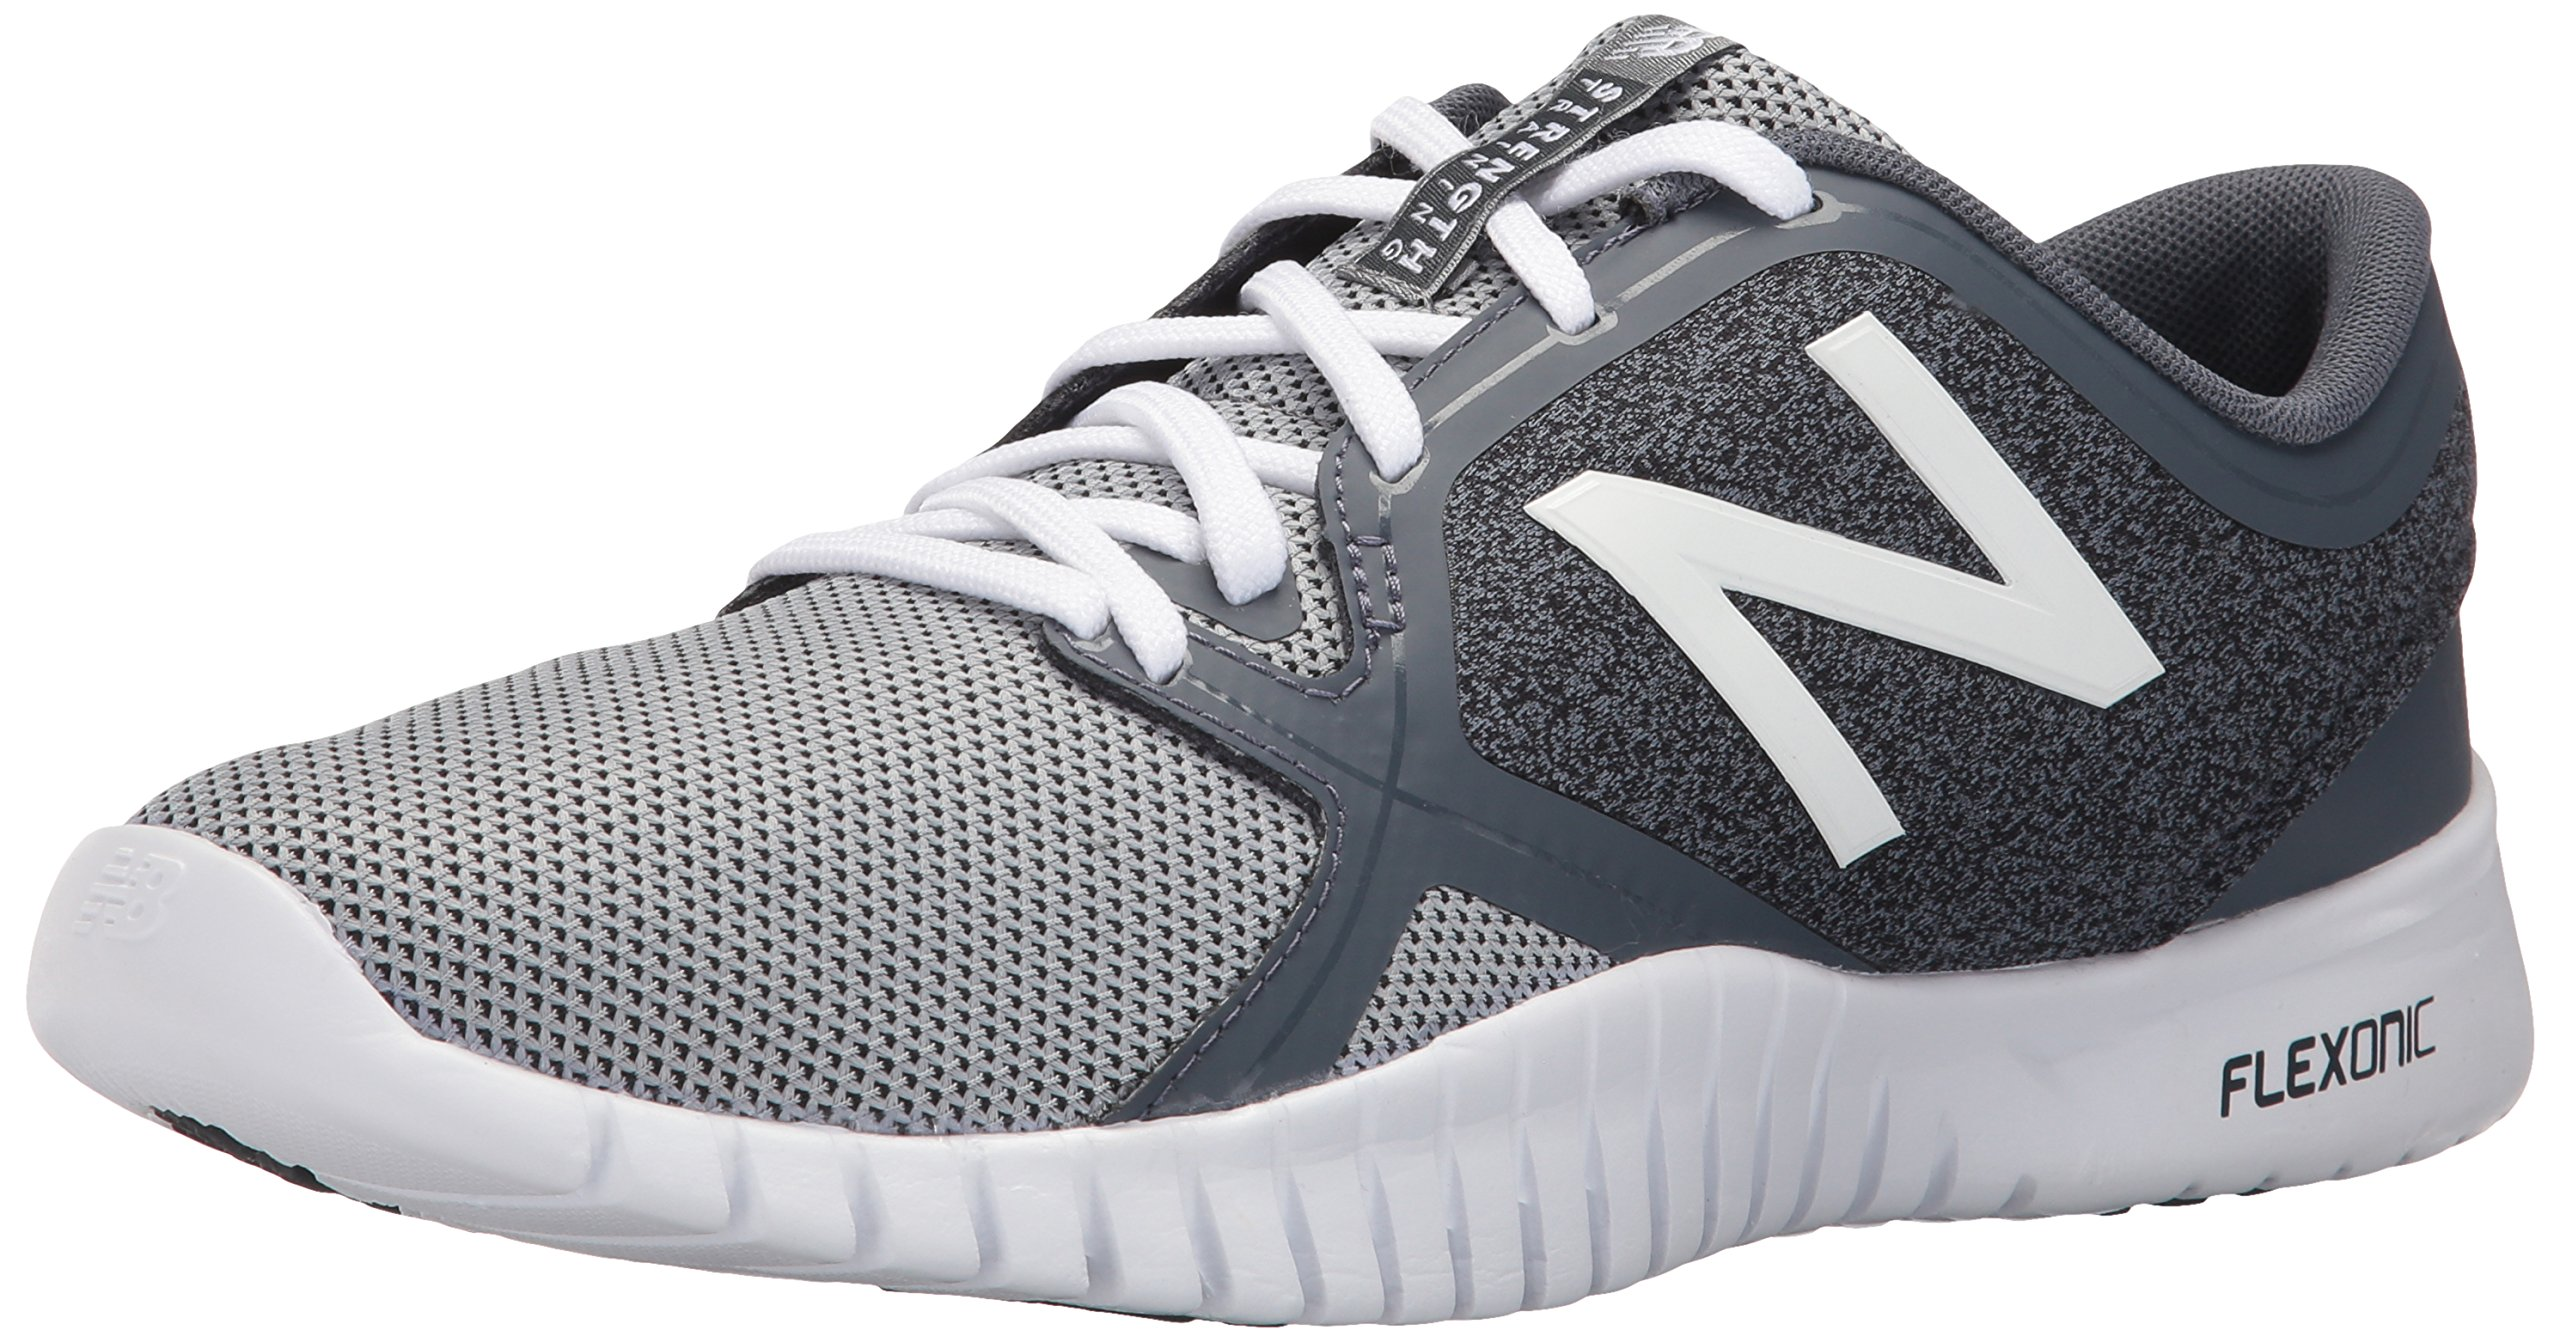 New Balance Men's 66v2 Flexonic Cross-Trainer-Shoes, Steel, 10 4E US by New Balance